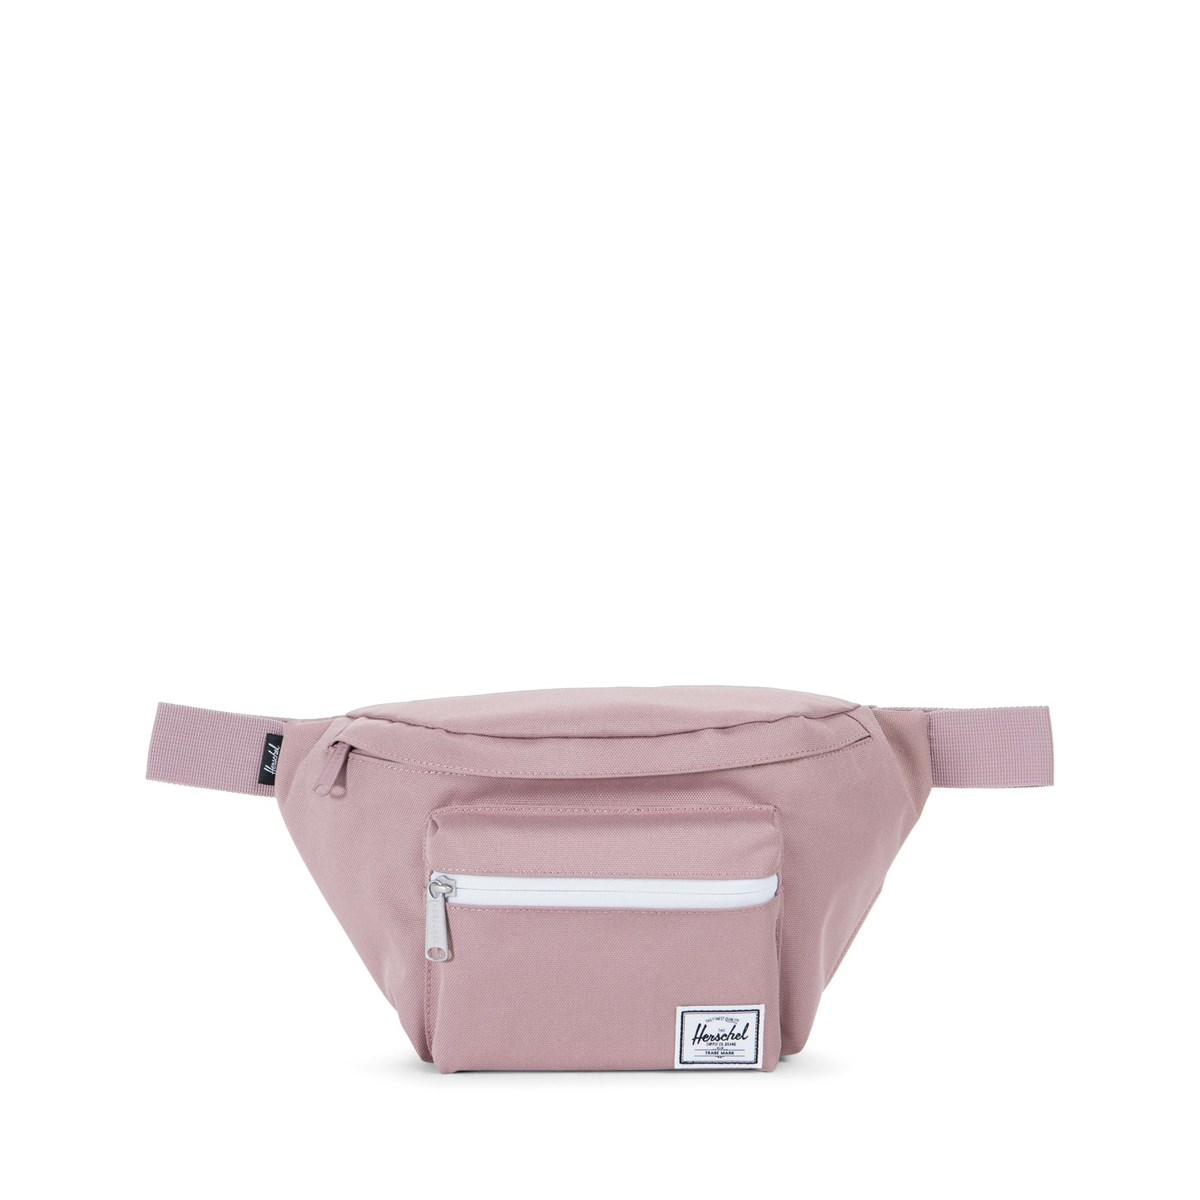 Seventeen Hip Pack in Pink